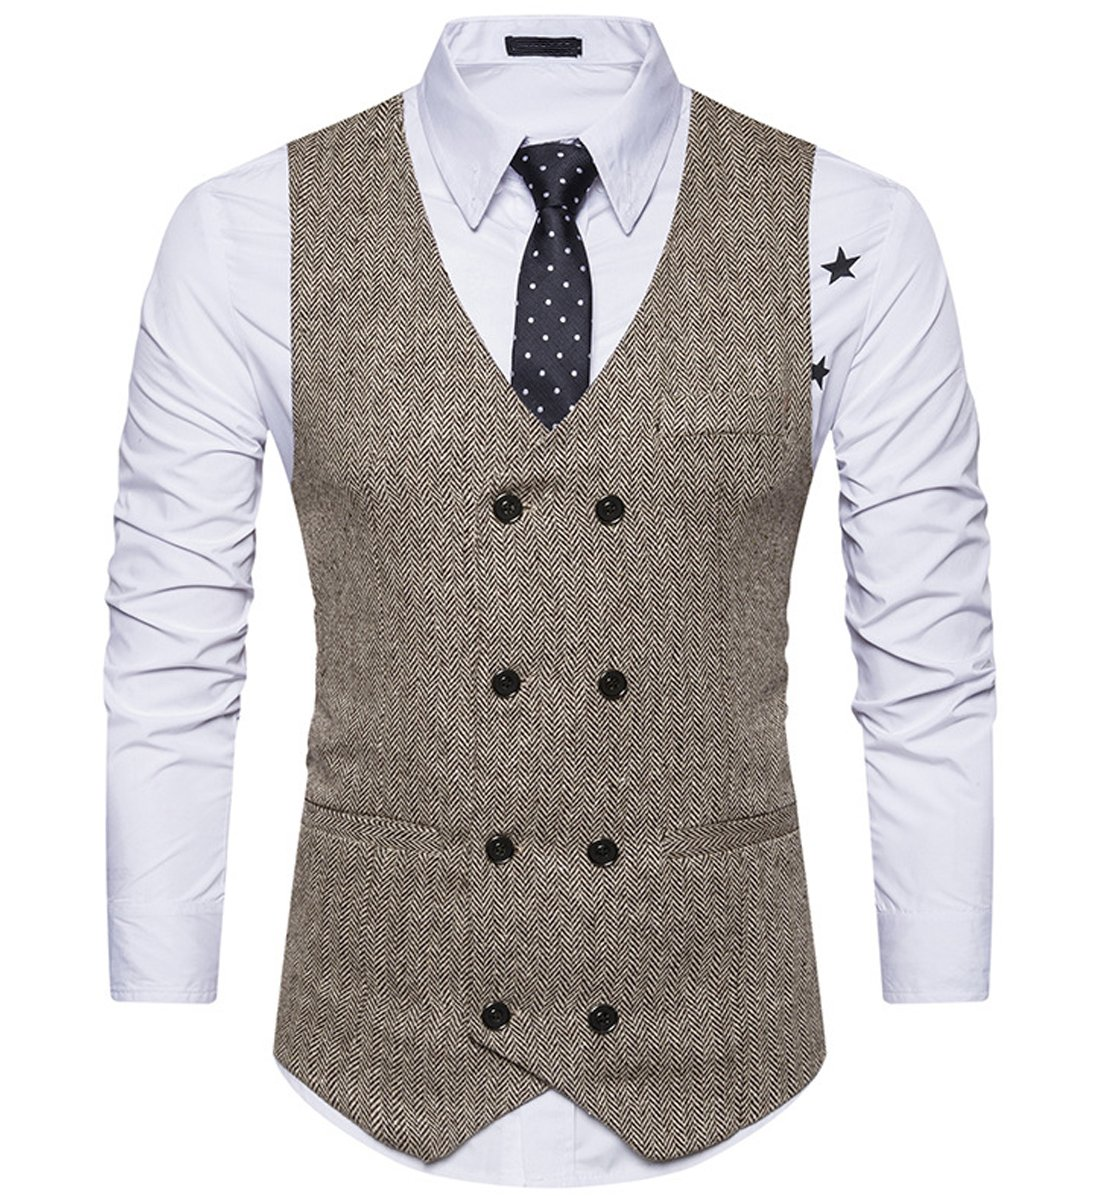 Mirecoo Men Slim Fit V Neck Double Breasted Tweed Business Casual Waistcoat Suit Vest